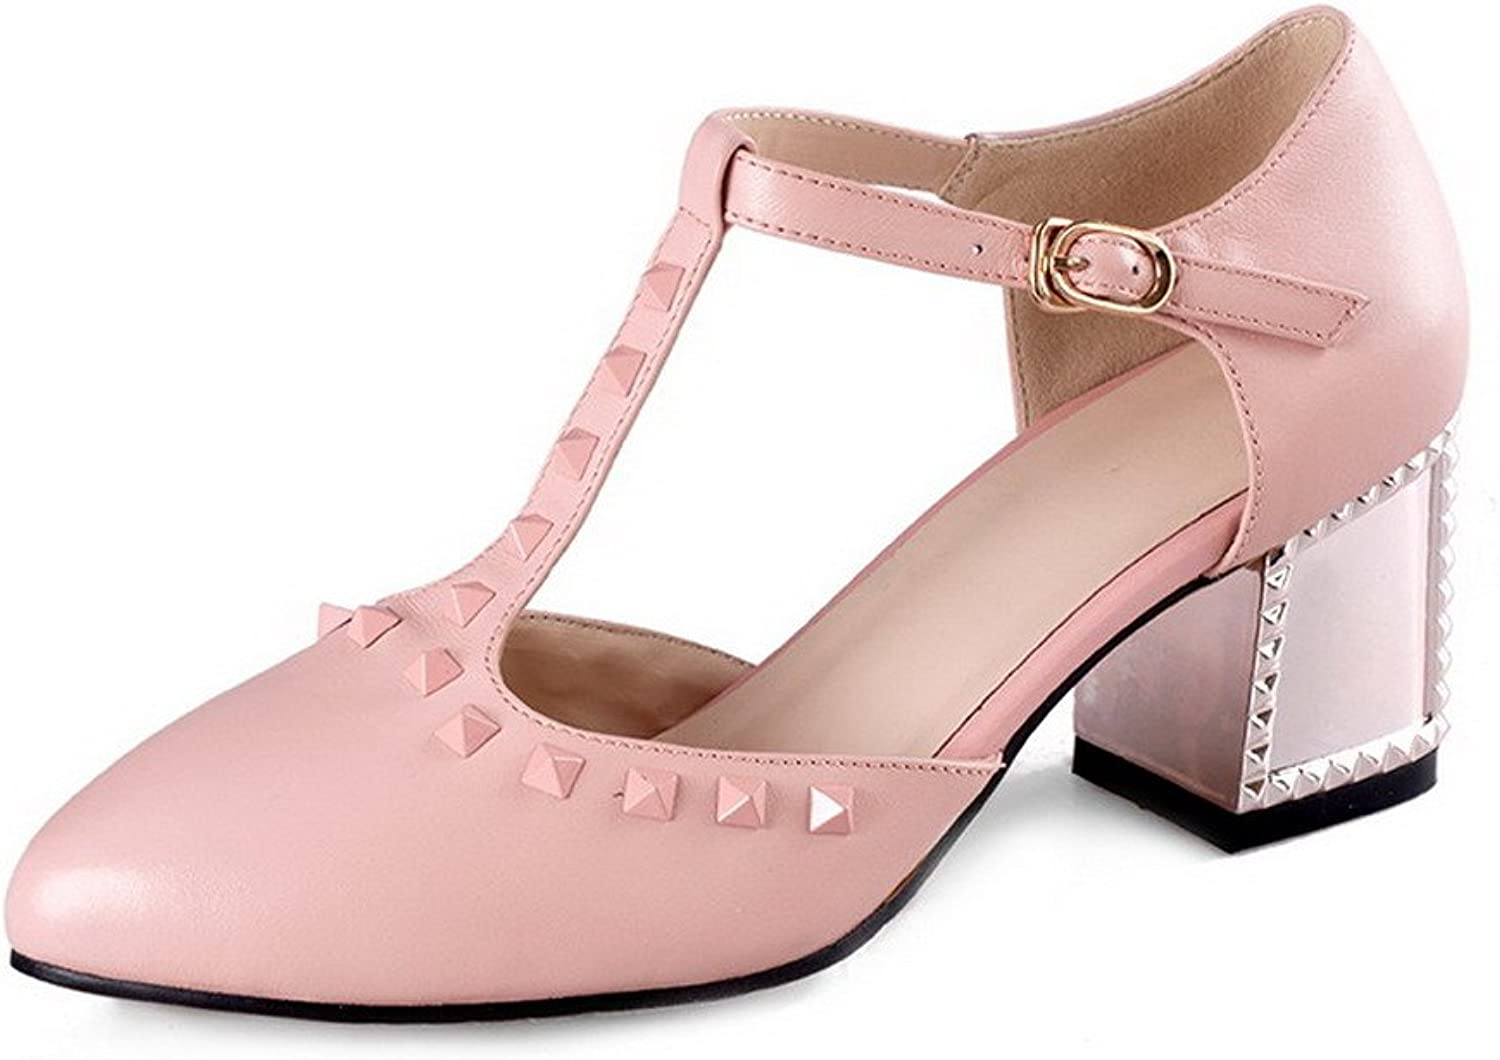 AmoonyFashion Women's Soft Material Buckle Pointed Closed Toe Kitten Heels Solid Pumps shoes